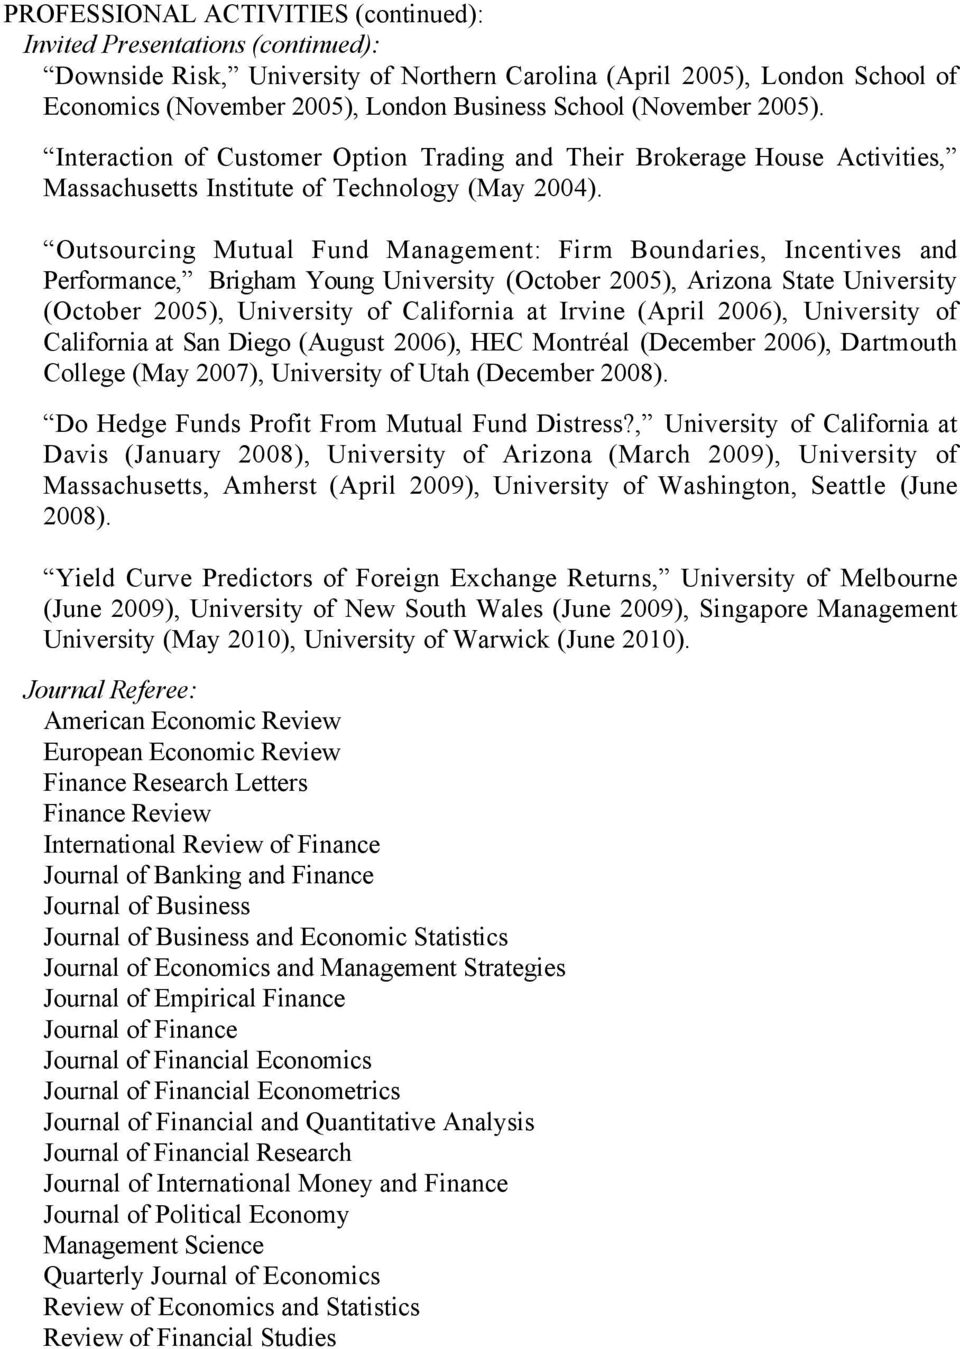 Outsourcing Mutual Fund Management: Firm Boundaries, Incentives and Performance, Brigham Young University (October 2005), Arizona State University (October 2005), University of California at Irvine